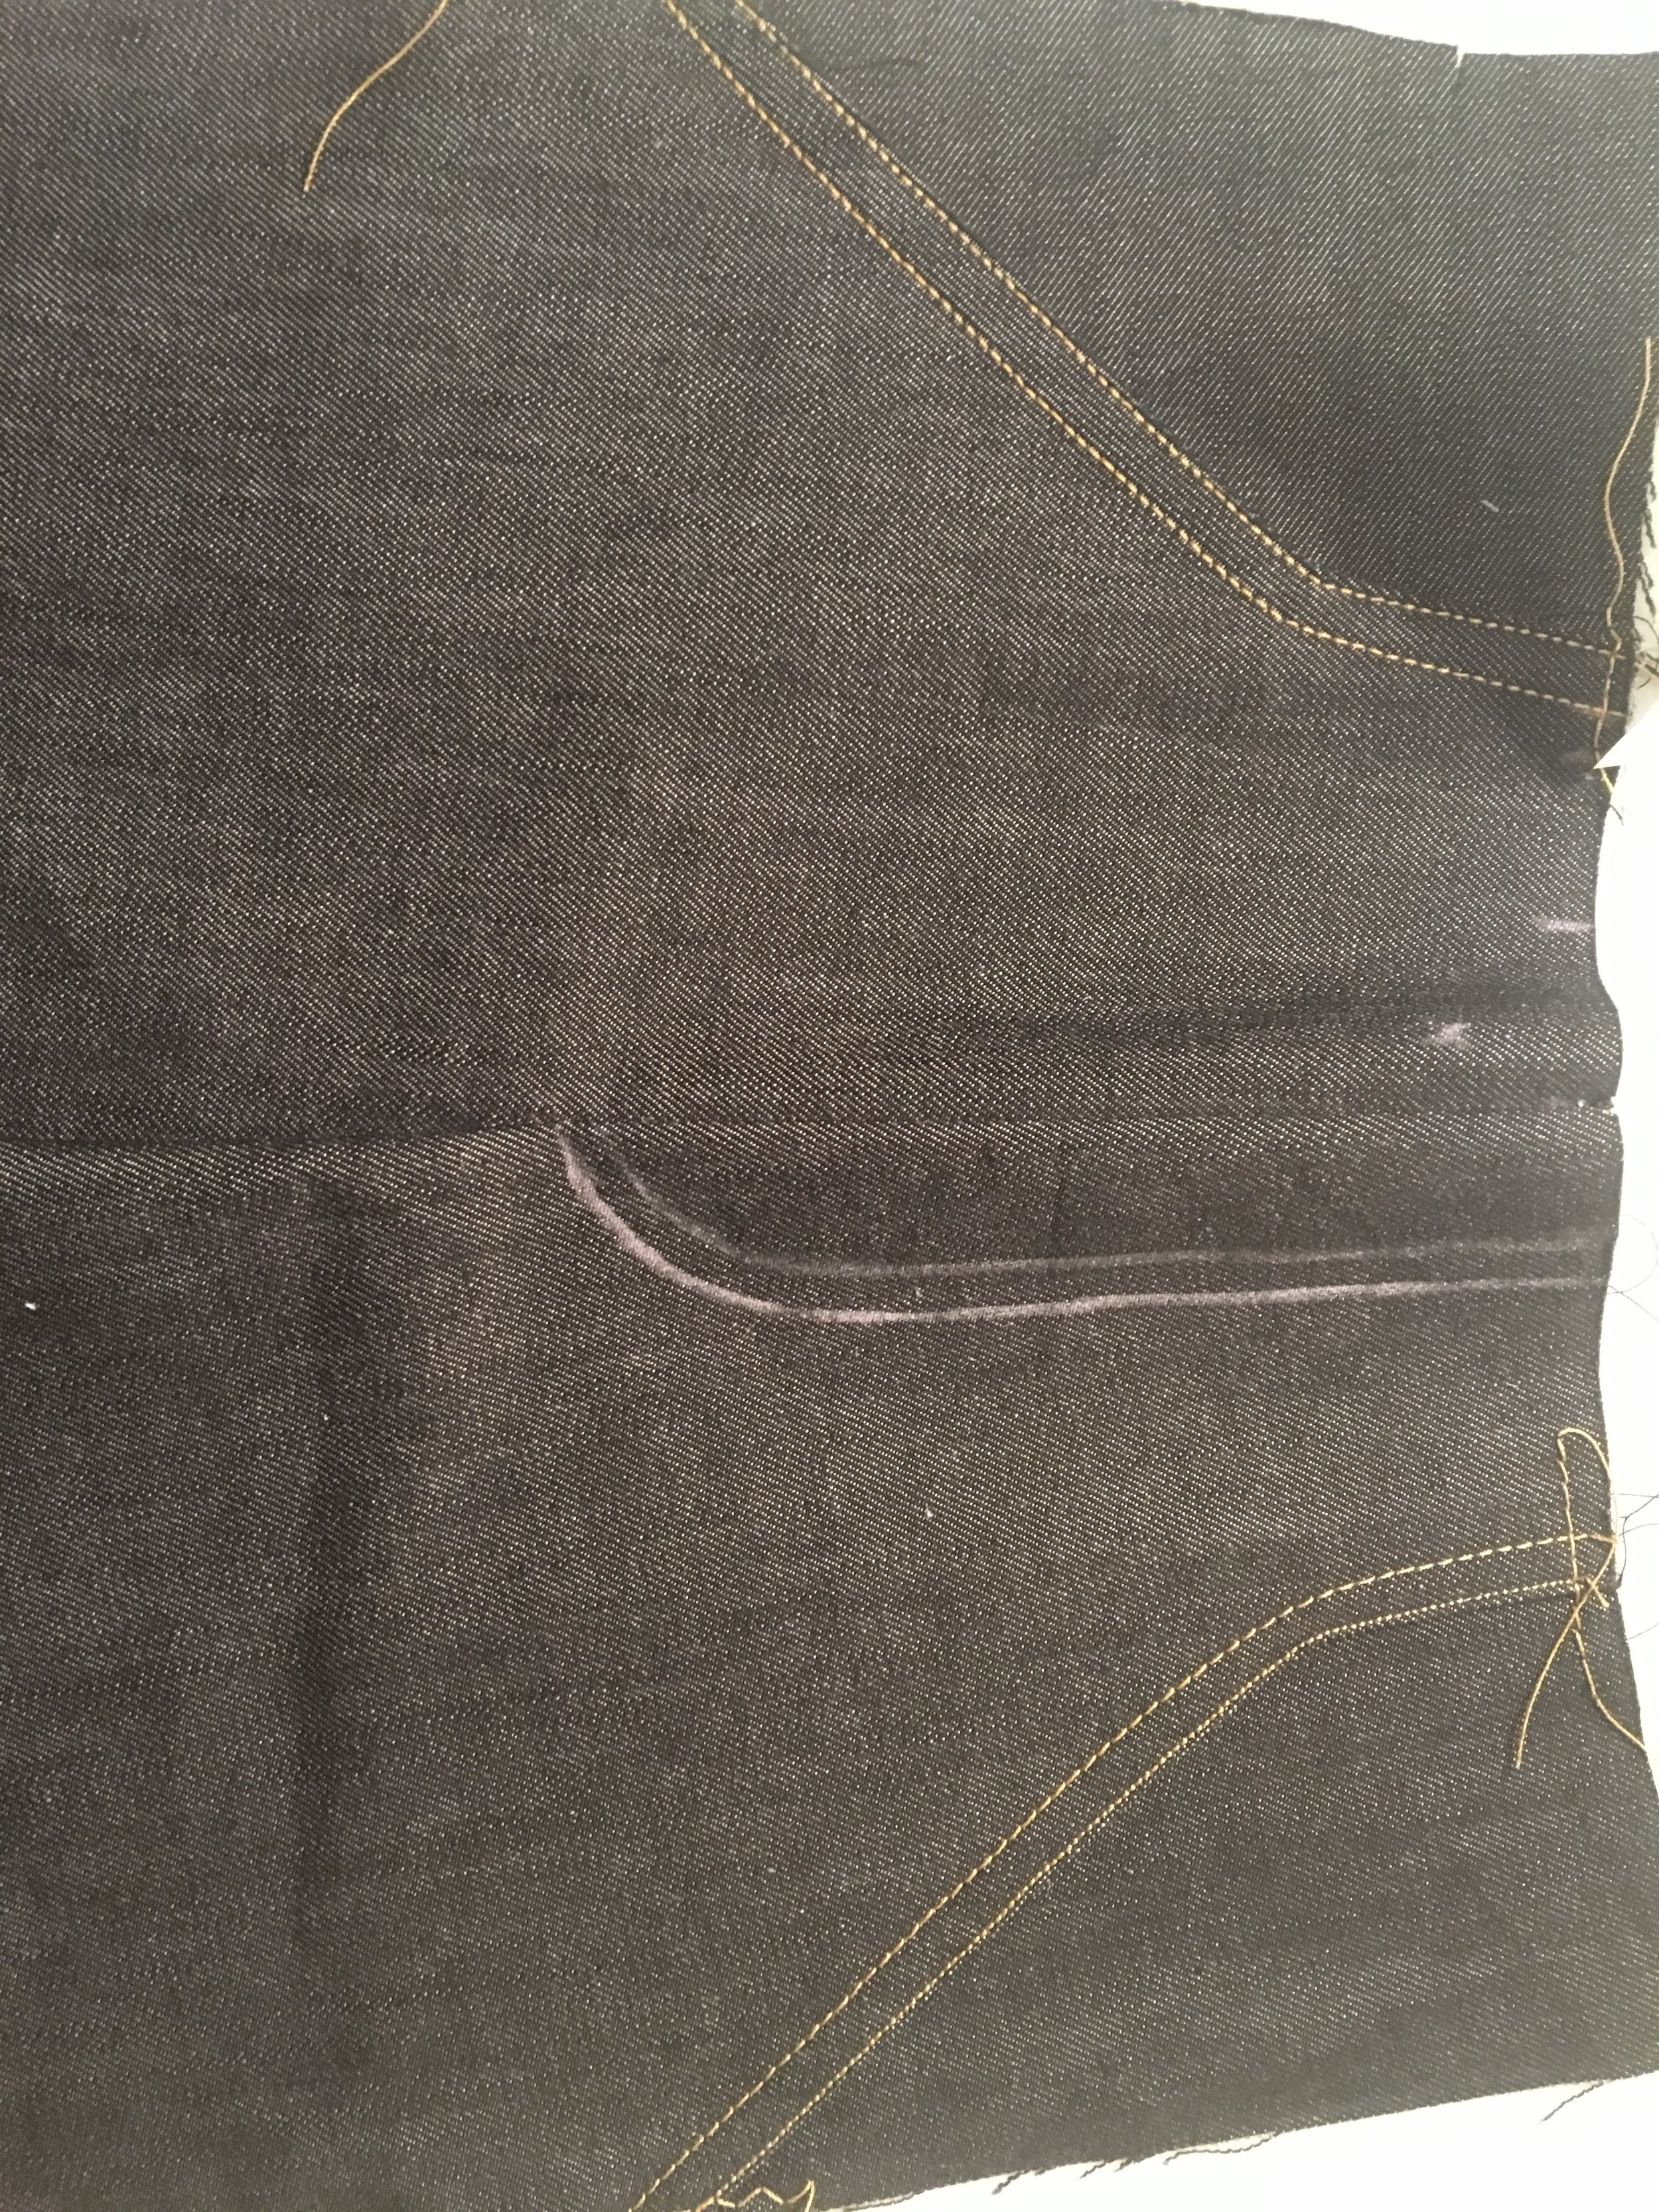 assembled pants front, chalked for fly topstitching guides